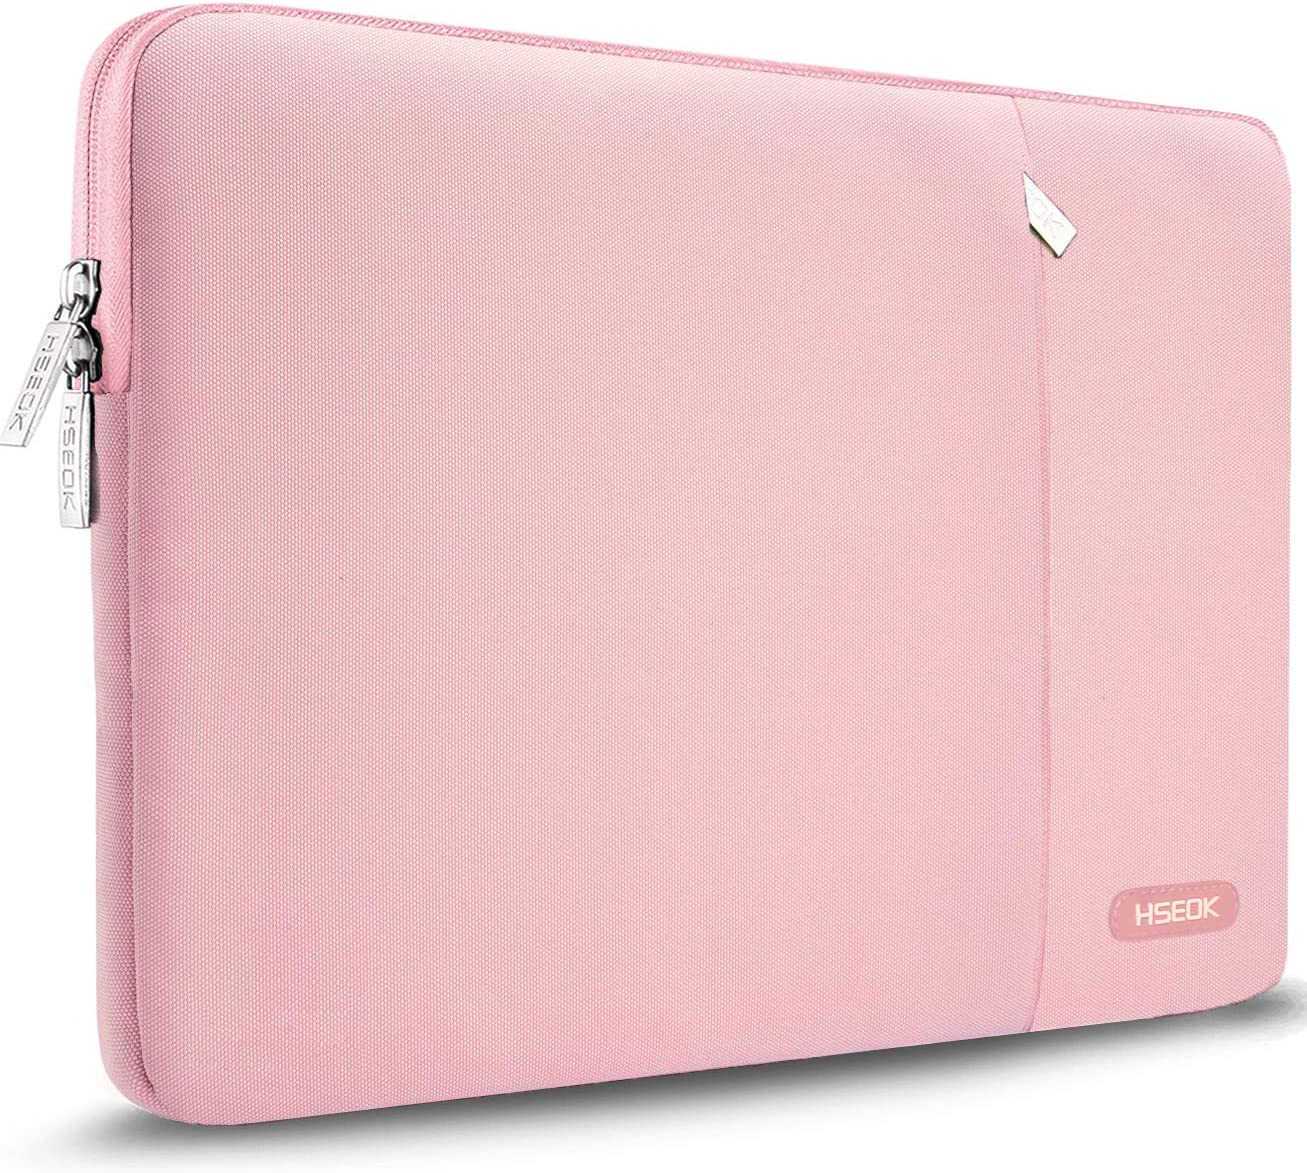 HSEOK 15-15.4 Inch Laptop Case Sleeve, Environmental-Friendly Spill-Resistant Laptop Case for New MacBook Pro 15.4-Inch A1707, XPS 15, Aspire R14 and More, Pink